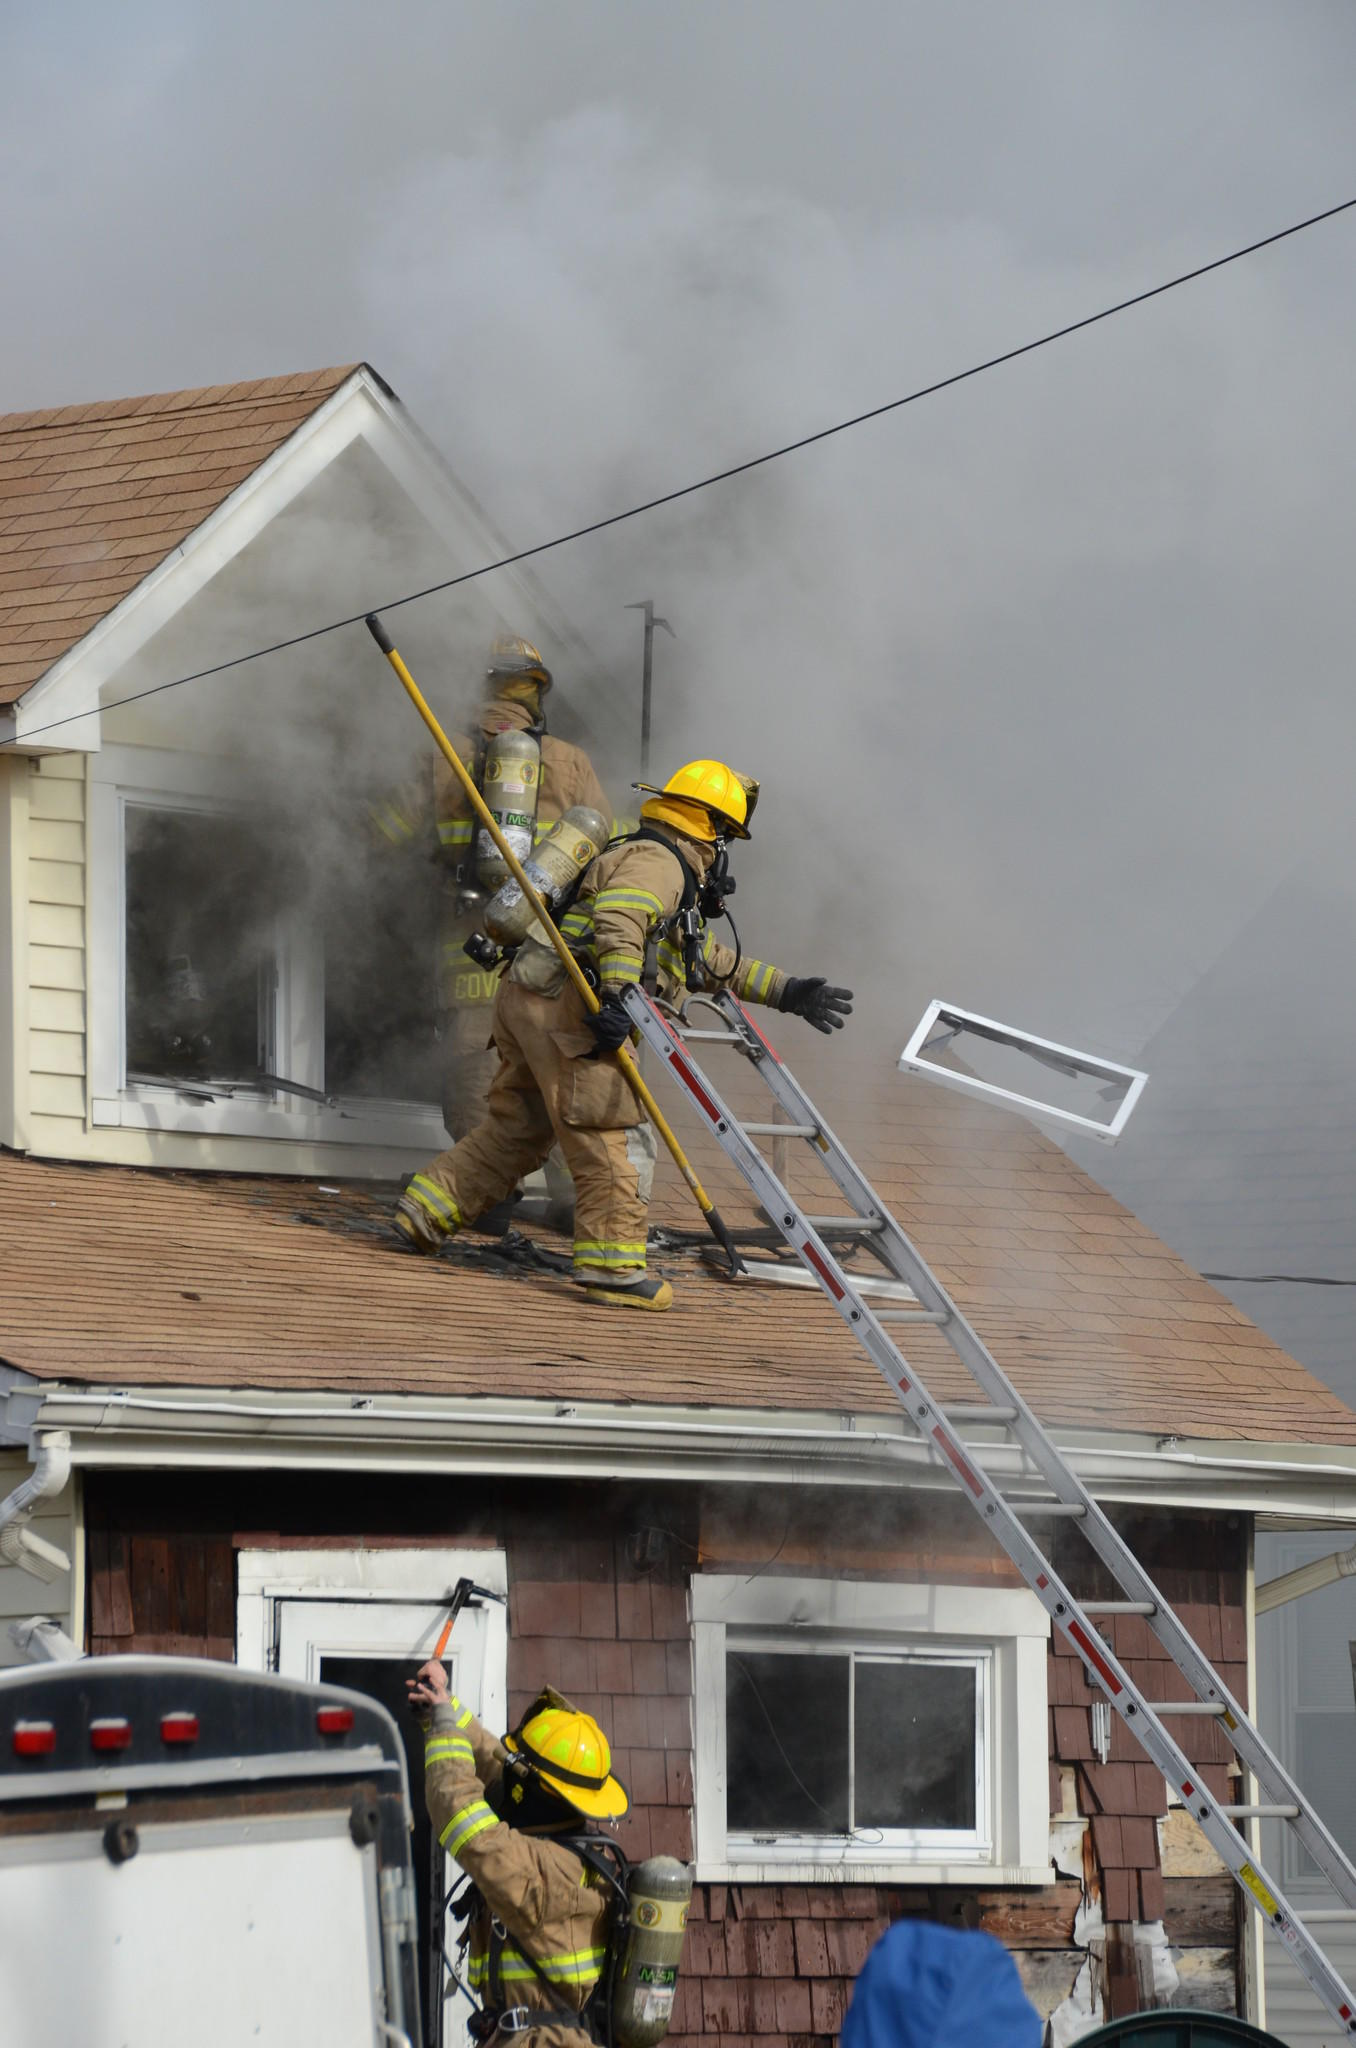 Anne Arundel County firefighters respond to a house fire at midday on Monday (Jan. 6, 2014) at the corner of 12th Avenue and Morgan Road in Brooklyn Park